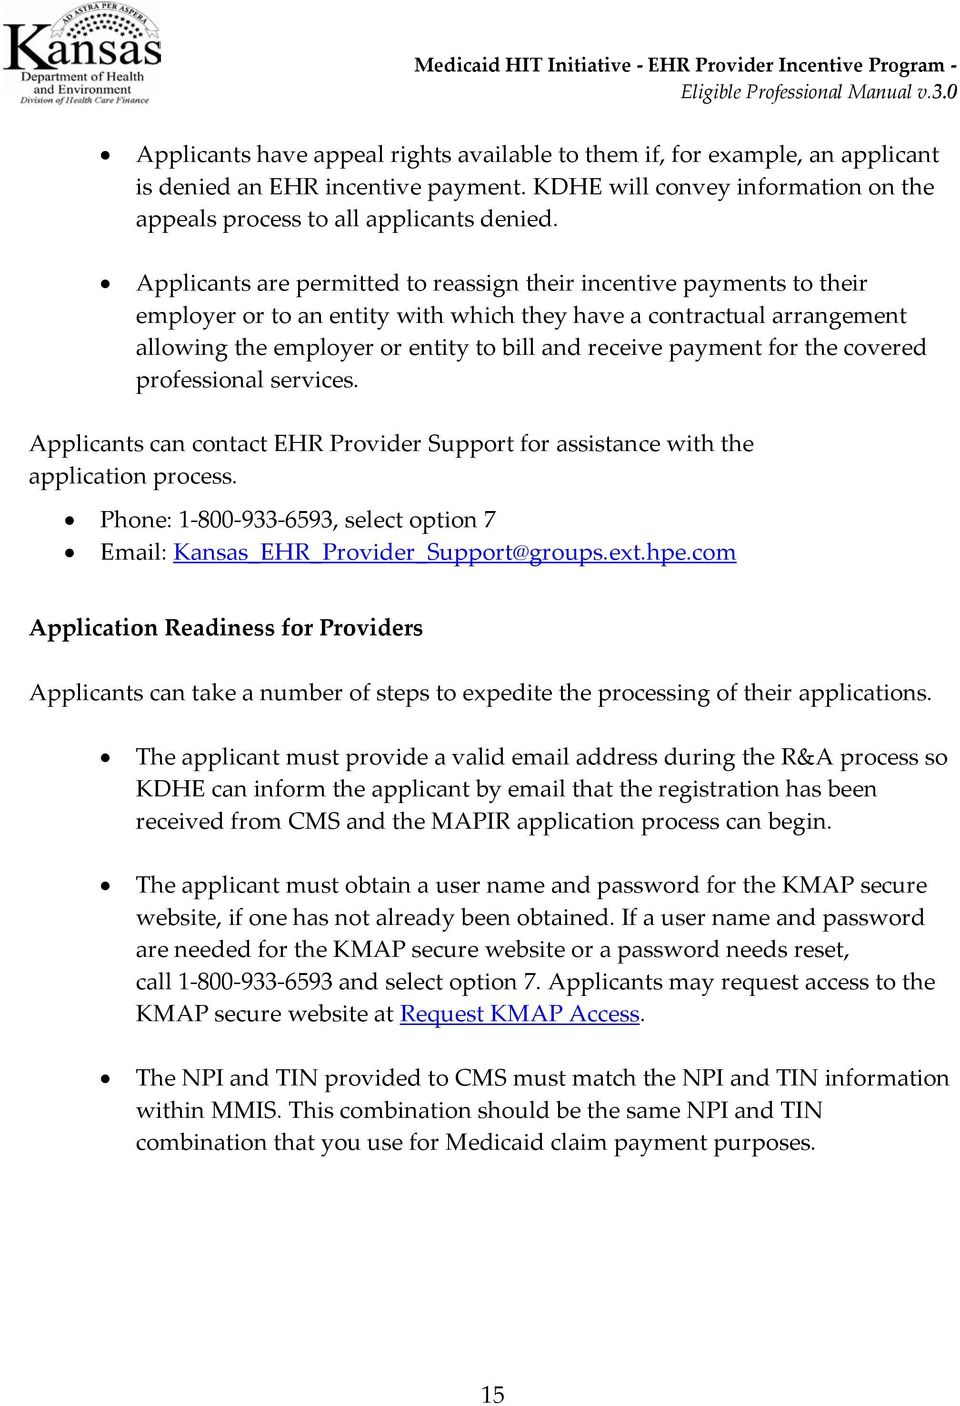 payment for the covered professional services. Applicants can contact EHR Provider Support for assistance with the application process.